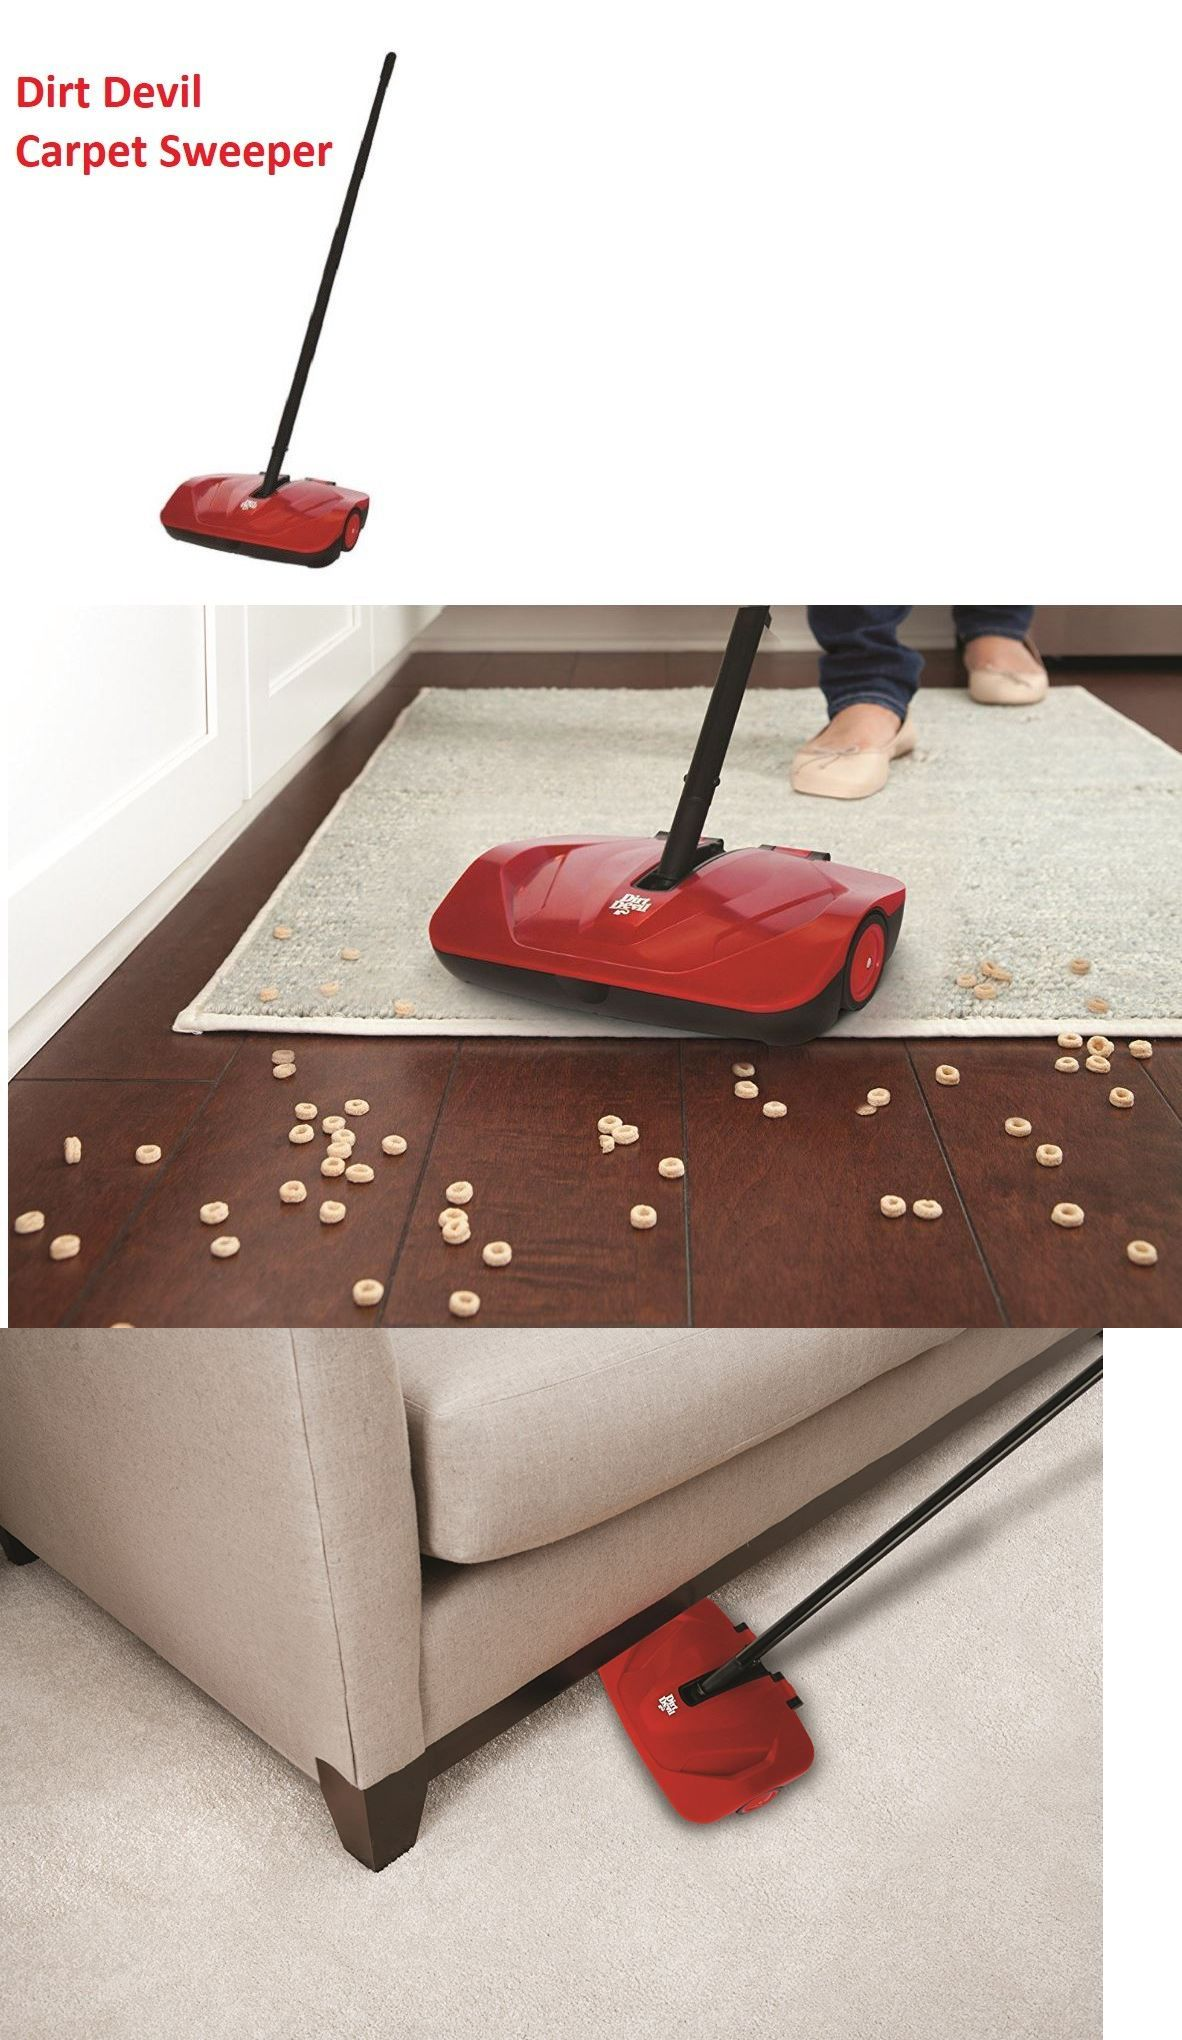 Carpet And Floor Sweepers 79657 Dirt Devil Carpet Sweeper